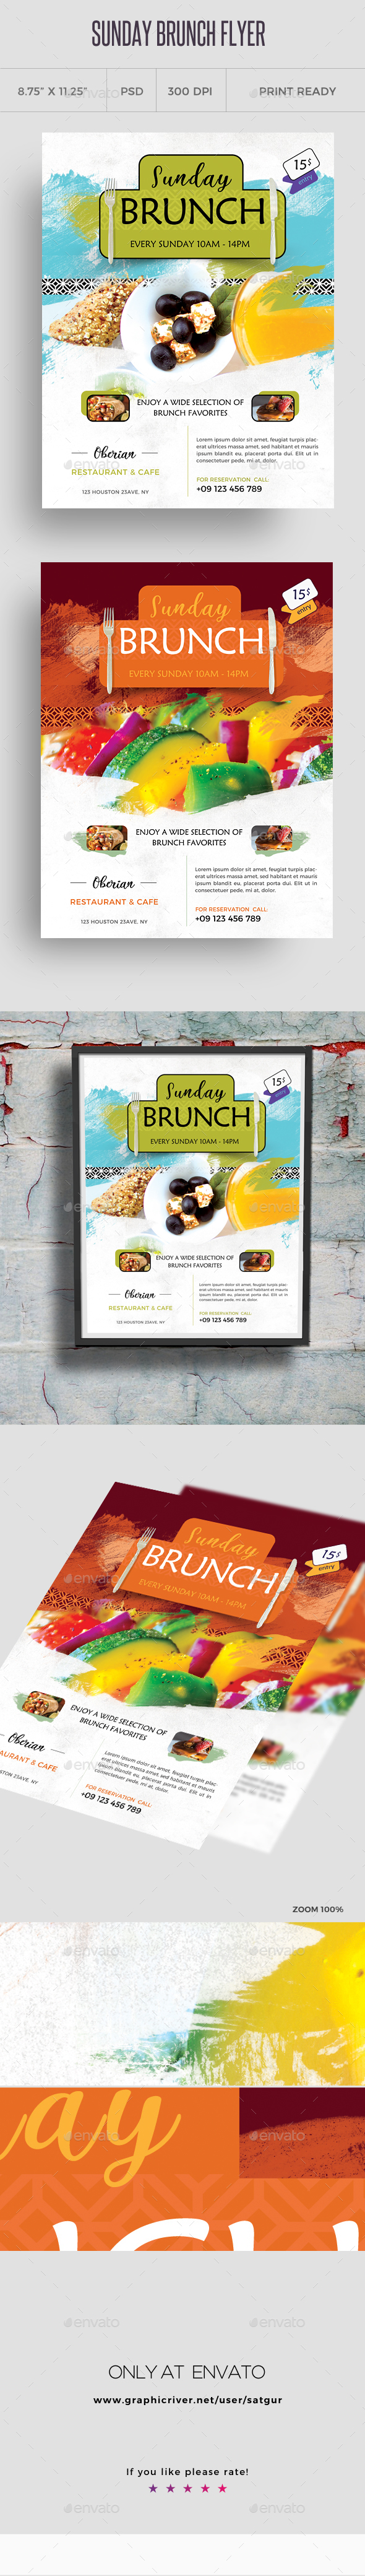 Sunday Brunch Flyer Template - Restaurant Flyers